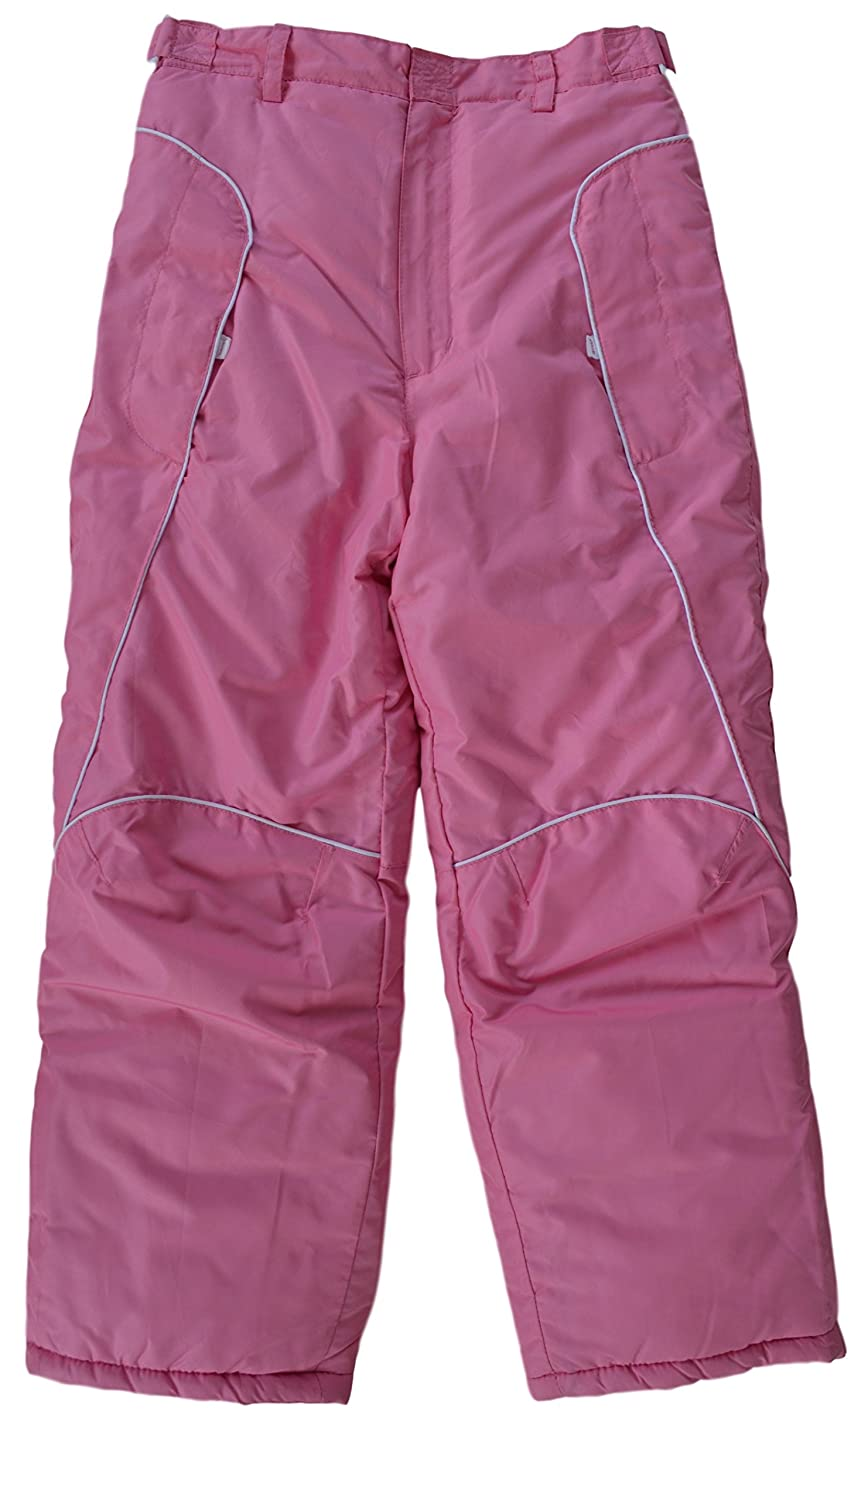 London Fog Youth Girl's Insulated Snow Pant Pink 14/16